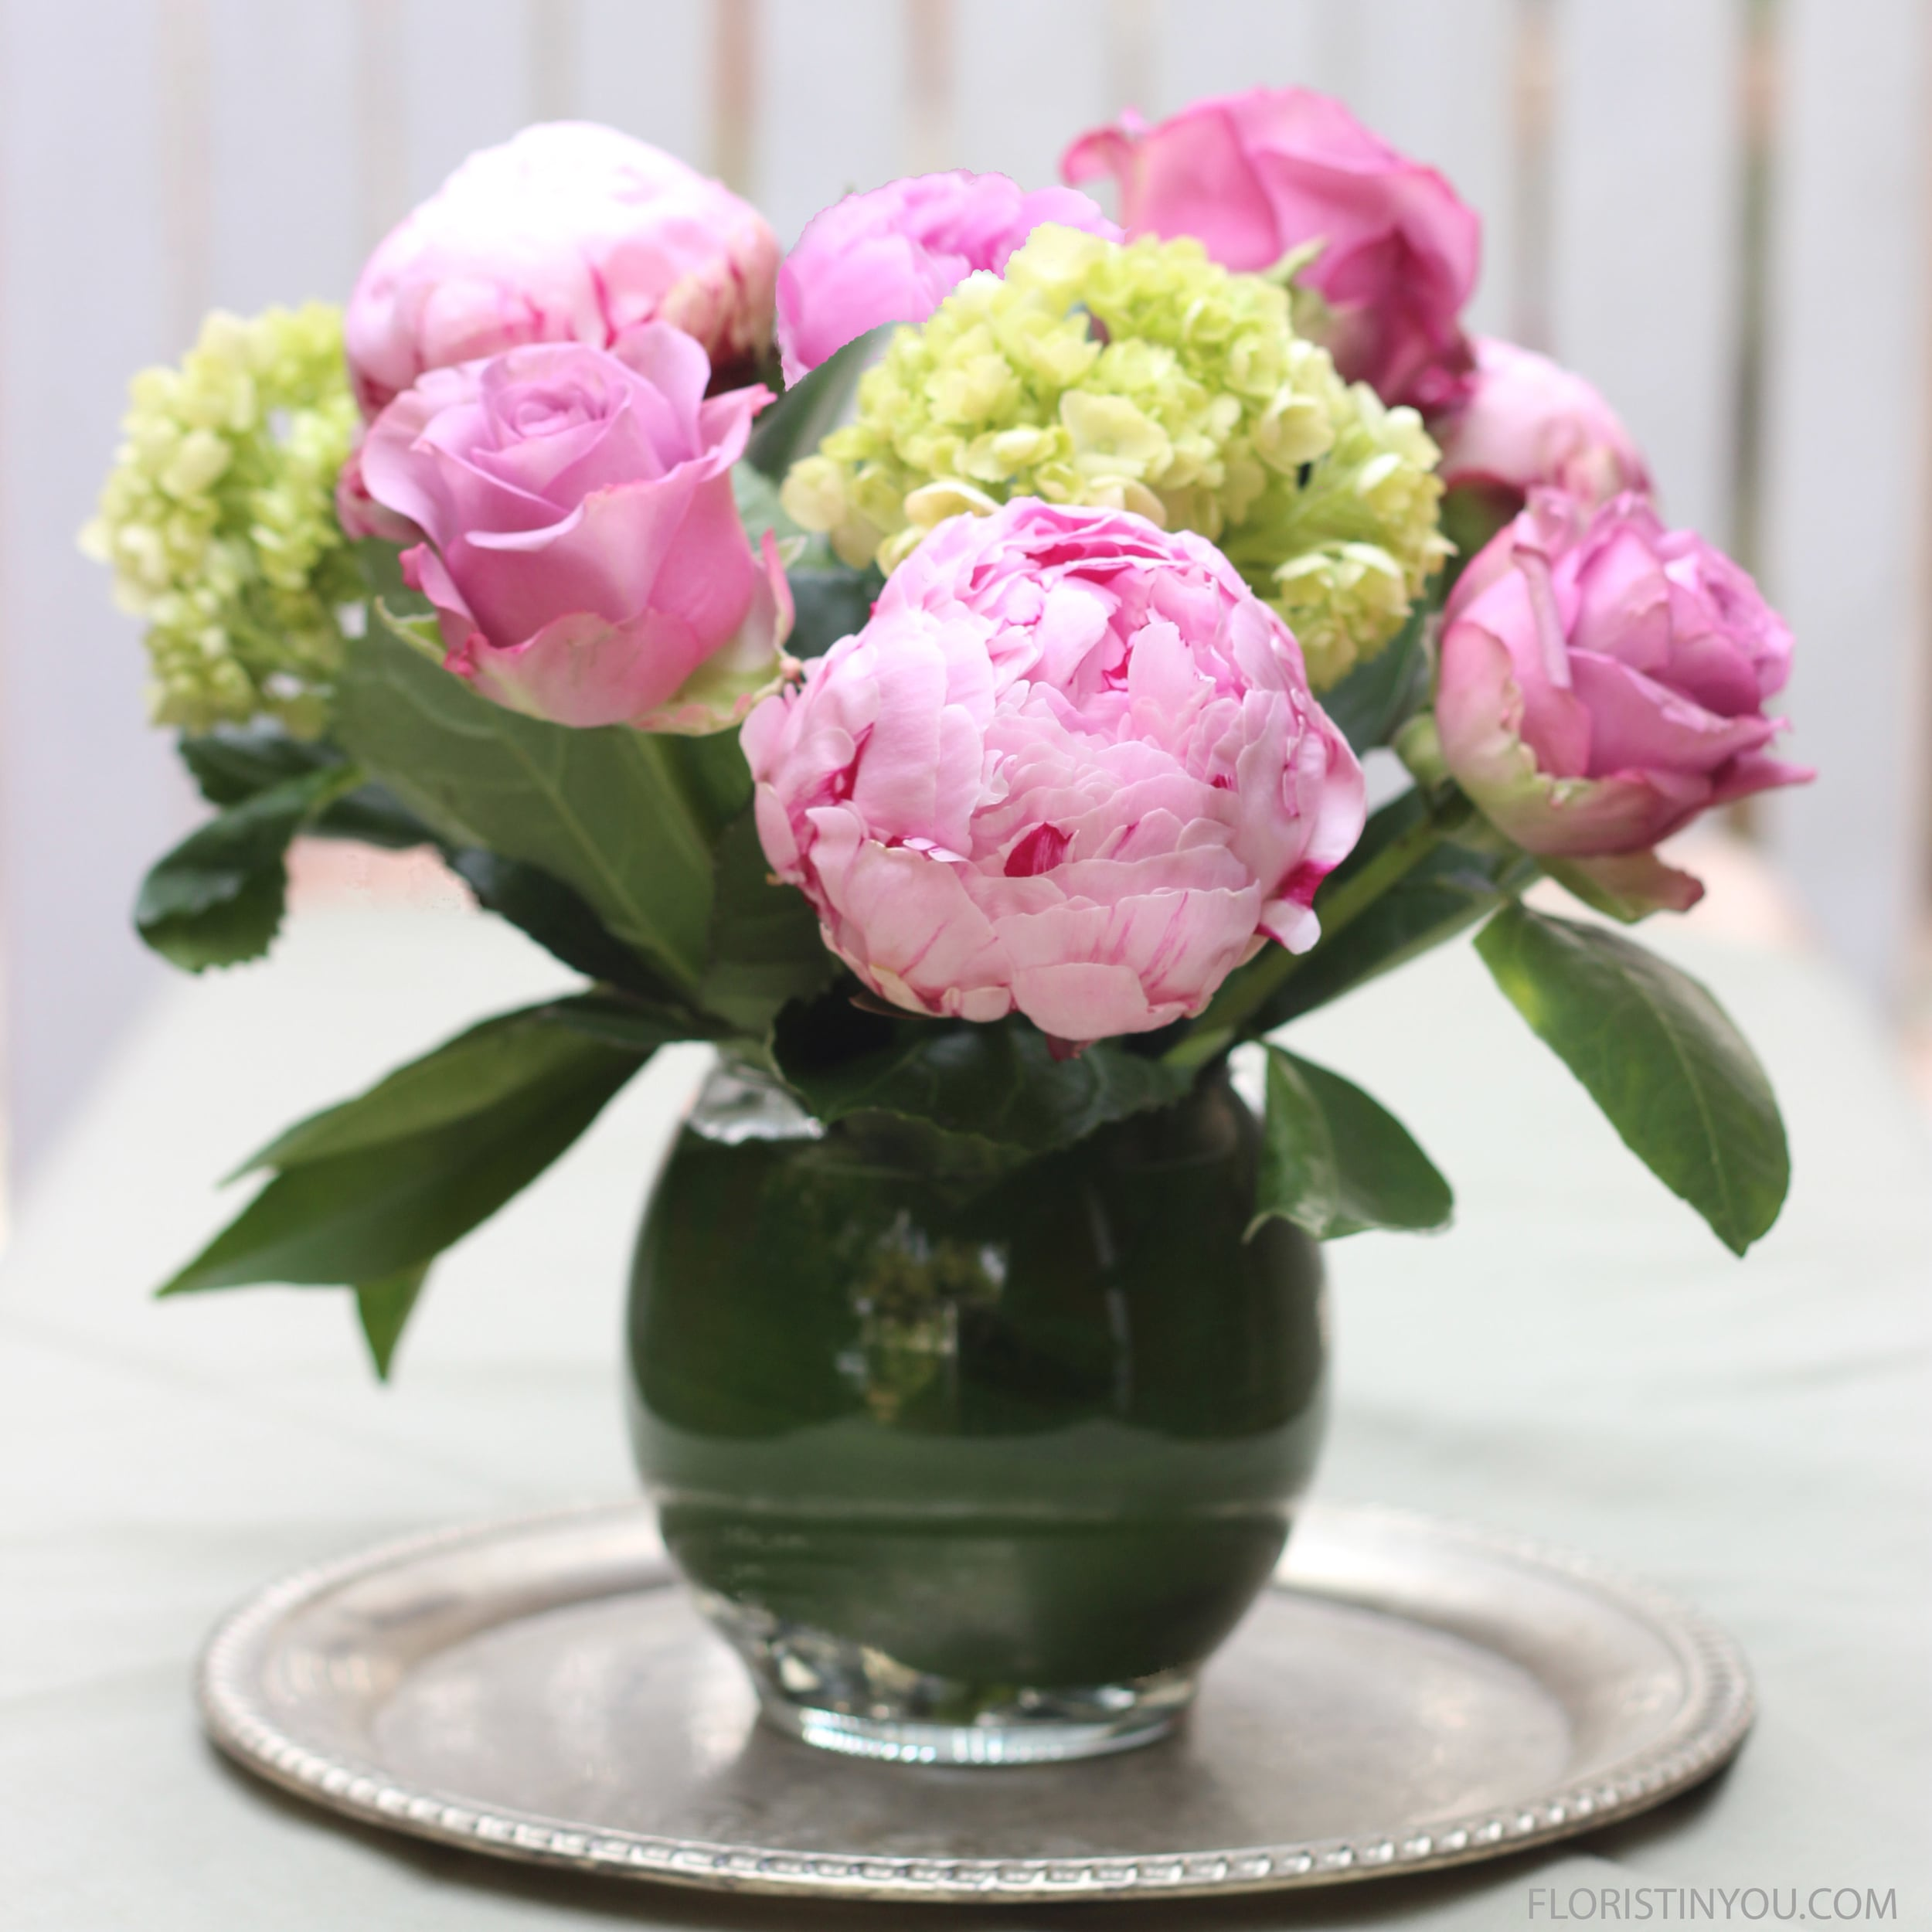 """Winter Peonies and Roses                     Normal   0           false   false   false     EN-US   JA   X-NONE                                                                                                                                                                                                                                                                                                                                                                              /* Style Definitions */ table.MsoNormalTable {mso-style-name:""""Table Normal""""; mso-tstyle-rowband-size:0; mso-tstyle-colband-size:0; mso-style-noshow:yes; mso-style-priority:99; mso-style-parent:""""""""; mso-padding-alt:0in 5.4pt 0in 5.4pt; mso-para-margin:0in; mso-para-margin-bottom:.0001pt; mso-pagination:widow-orphan; font-size:12.0pt; font-family:Cambria; mso-ascii-font-family:Cambria; mso-ascii-theme-font:minor-latin; mso-hansi-font-family:Cambria; mso-hansi-theme-font:minor-latin;}"""